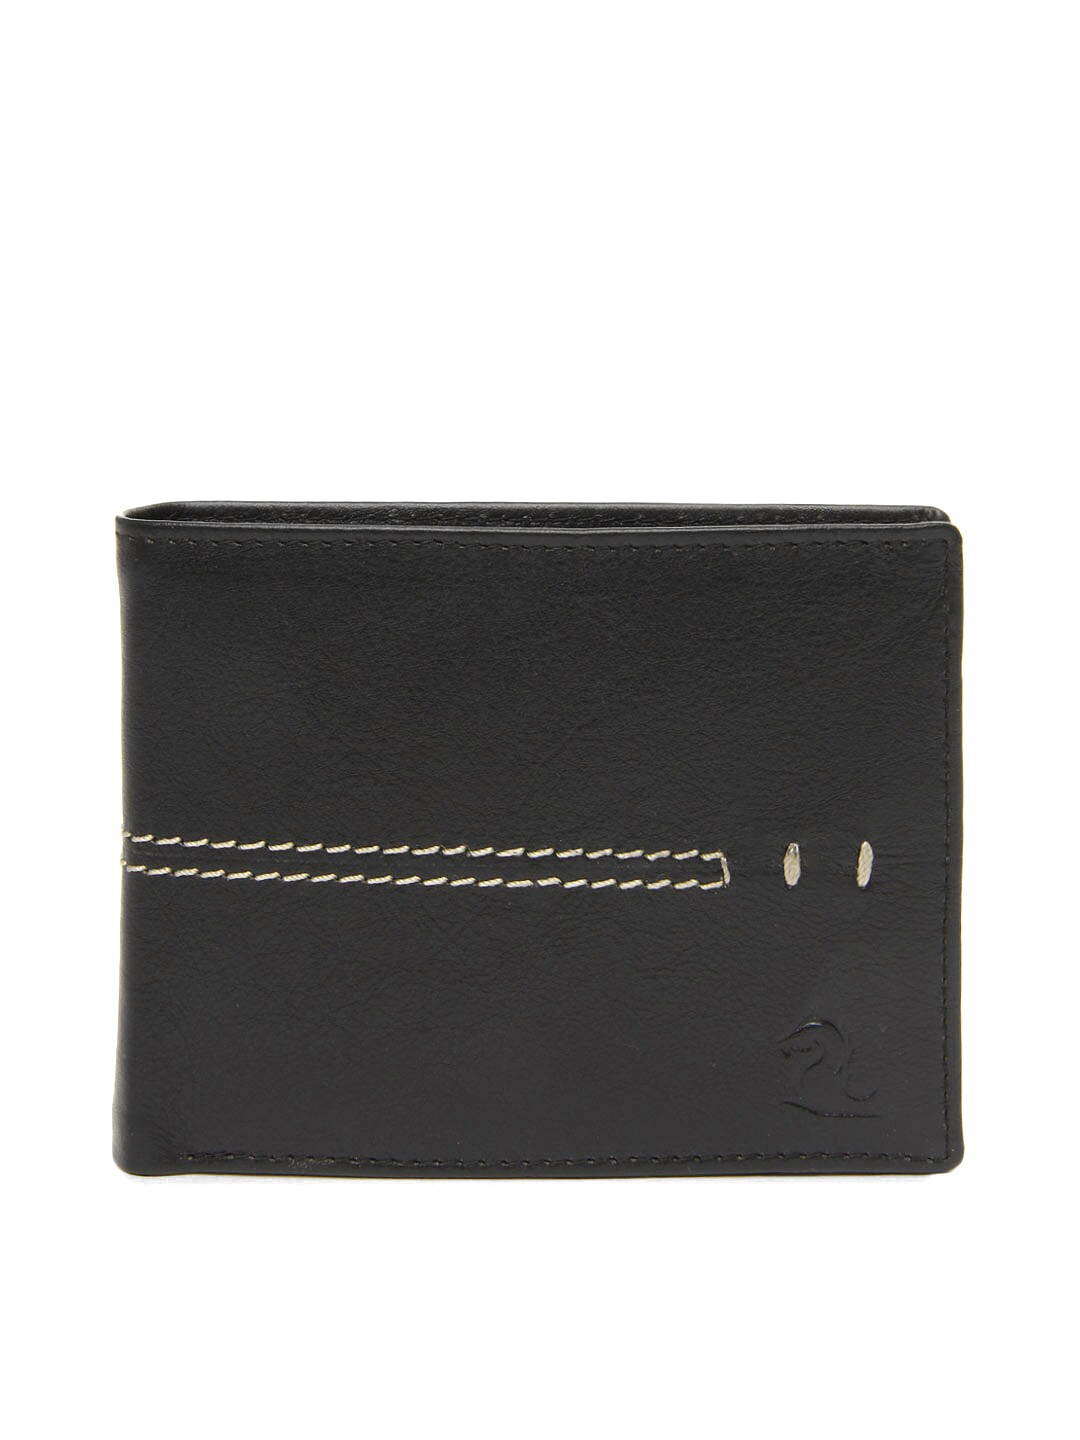 Kara Men Black Leather Wallet